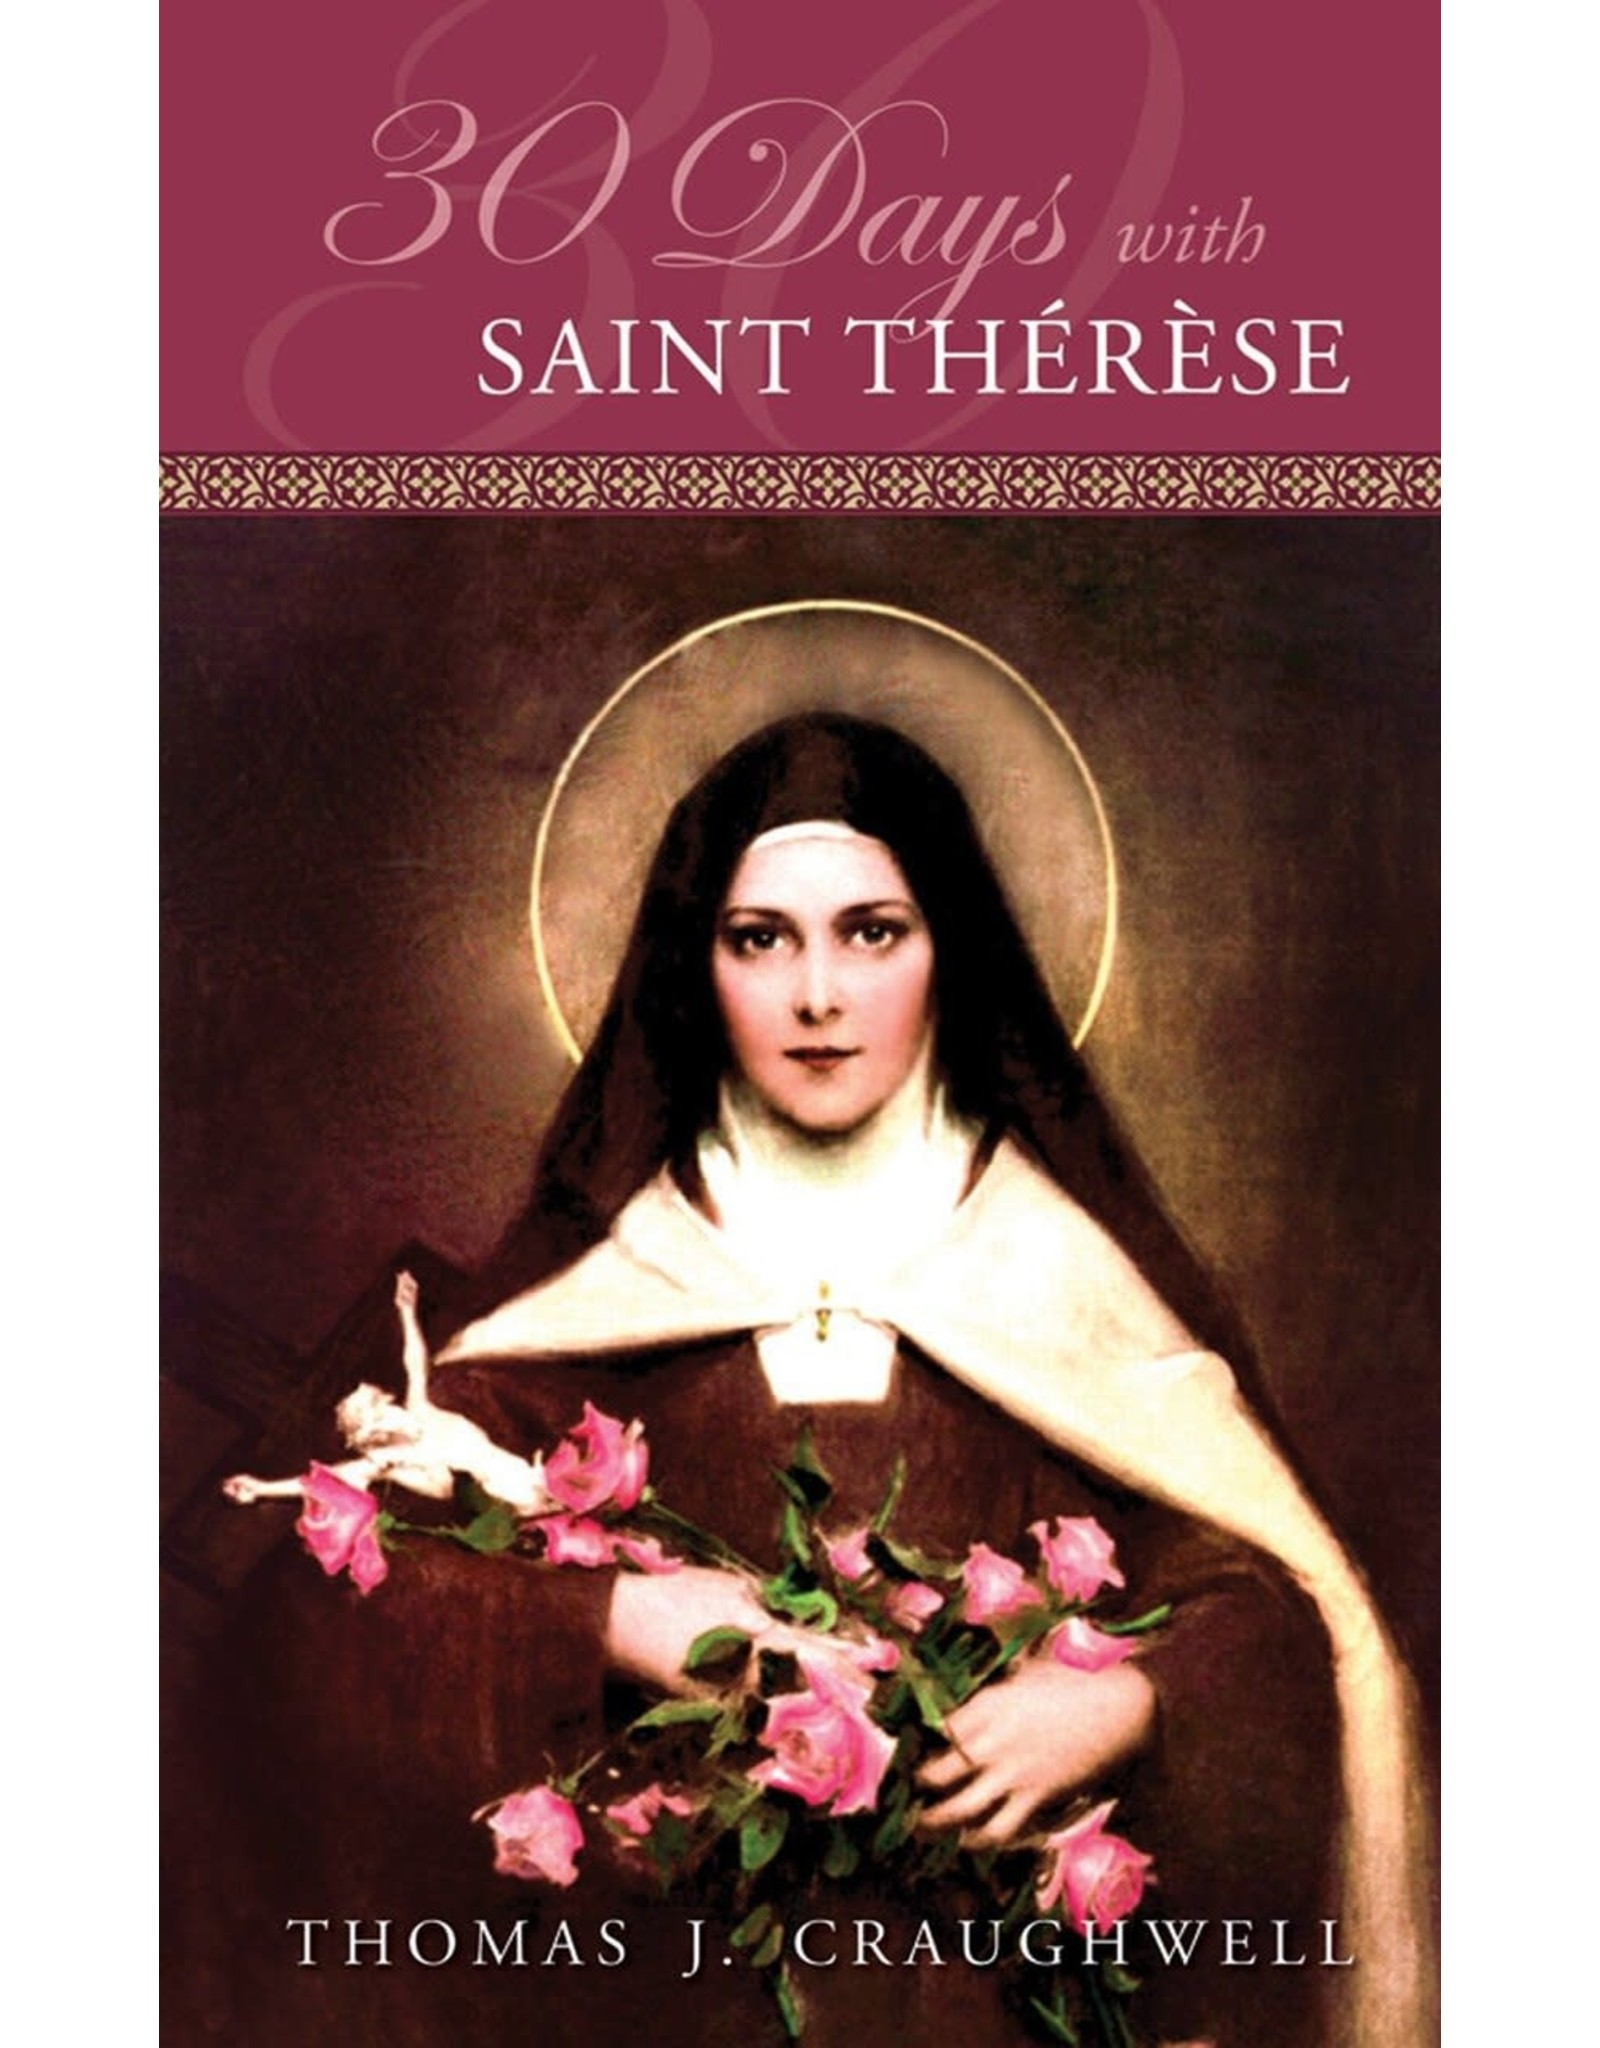 Tan Books 30 Days With Saint Therese by Thomas J. Craughwell (Paperback)